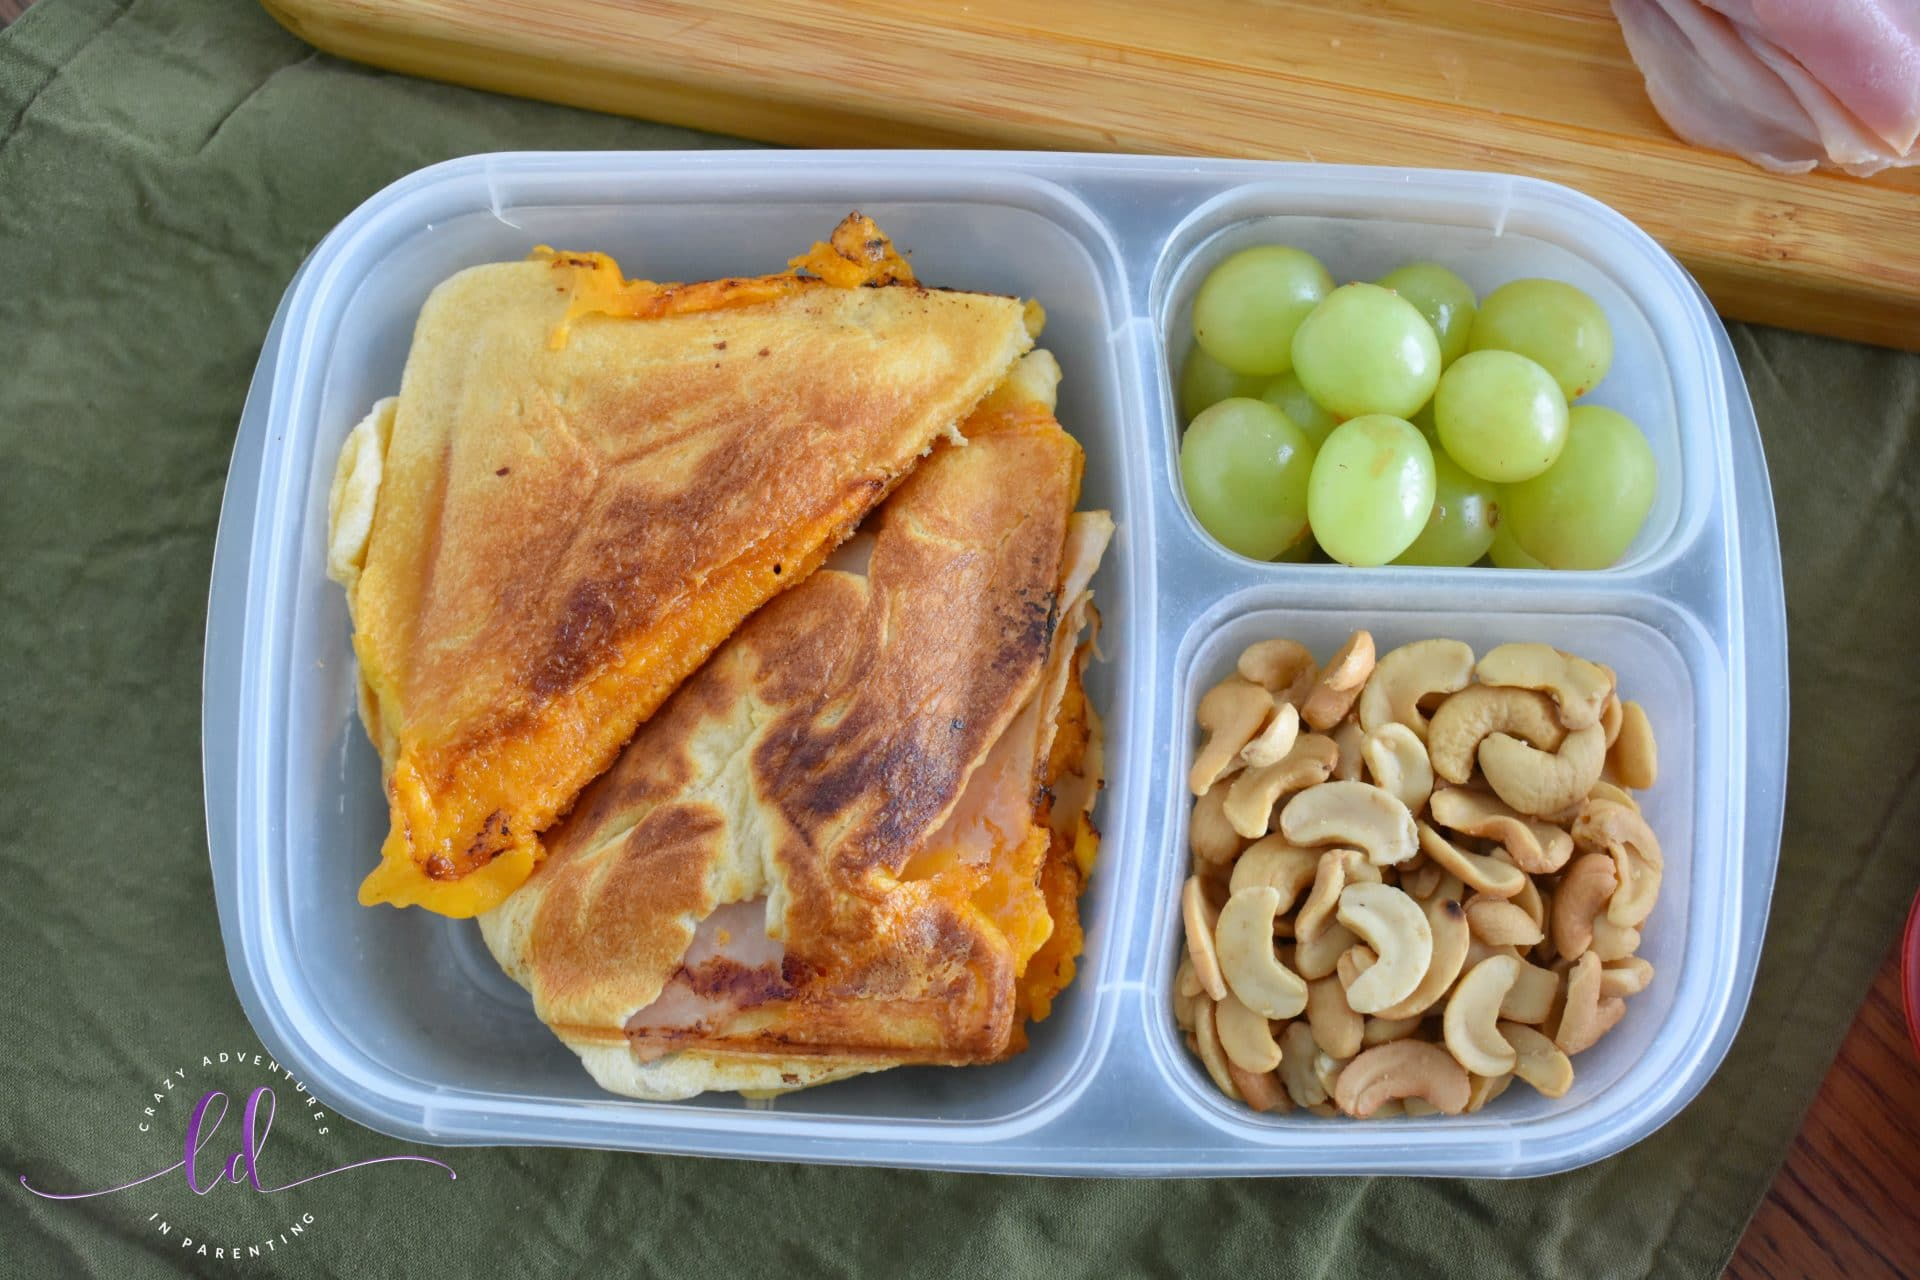 School Lunch Ideas - Crescent Roll Sandwiches in the Sandwich Maker